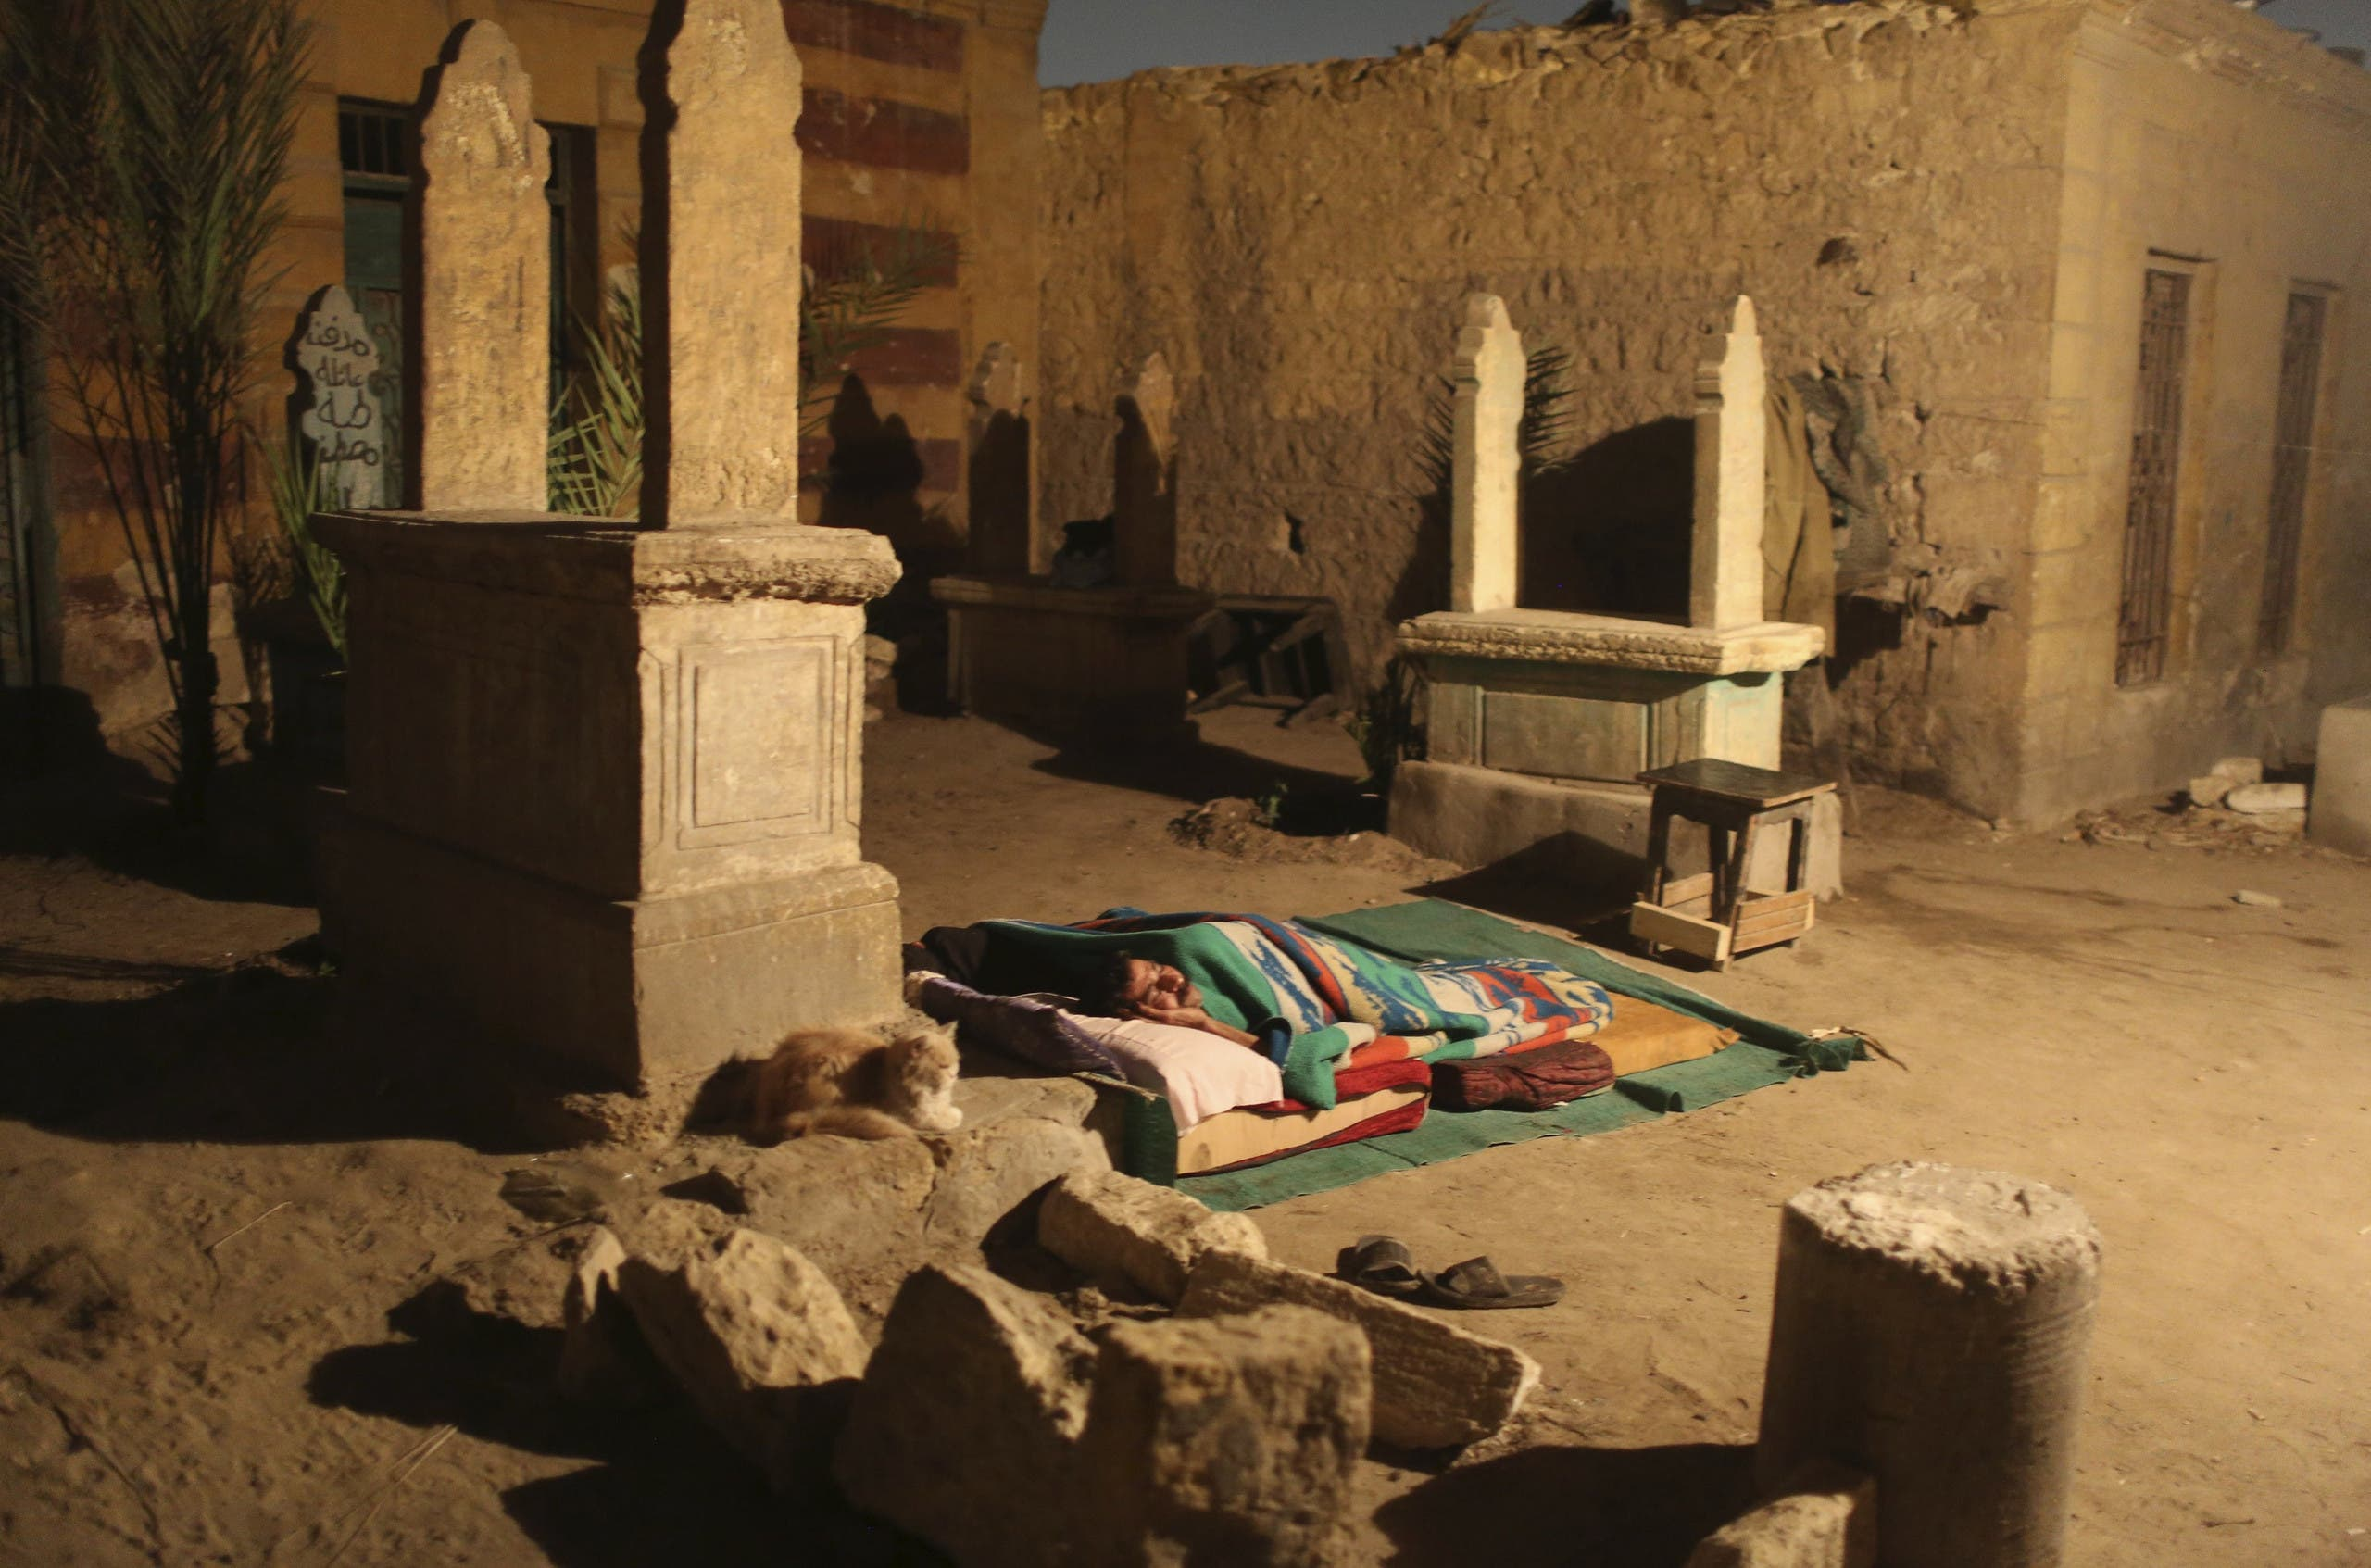 A man sleeps between tombstones in front of his single-room home on a hot night in the Cairo Necropolis, Egypt, October 13, 2015. reuters